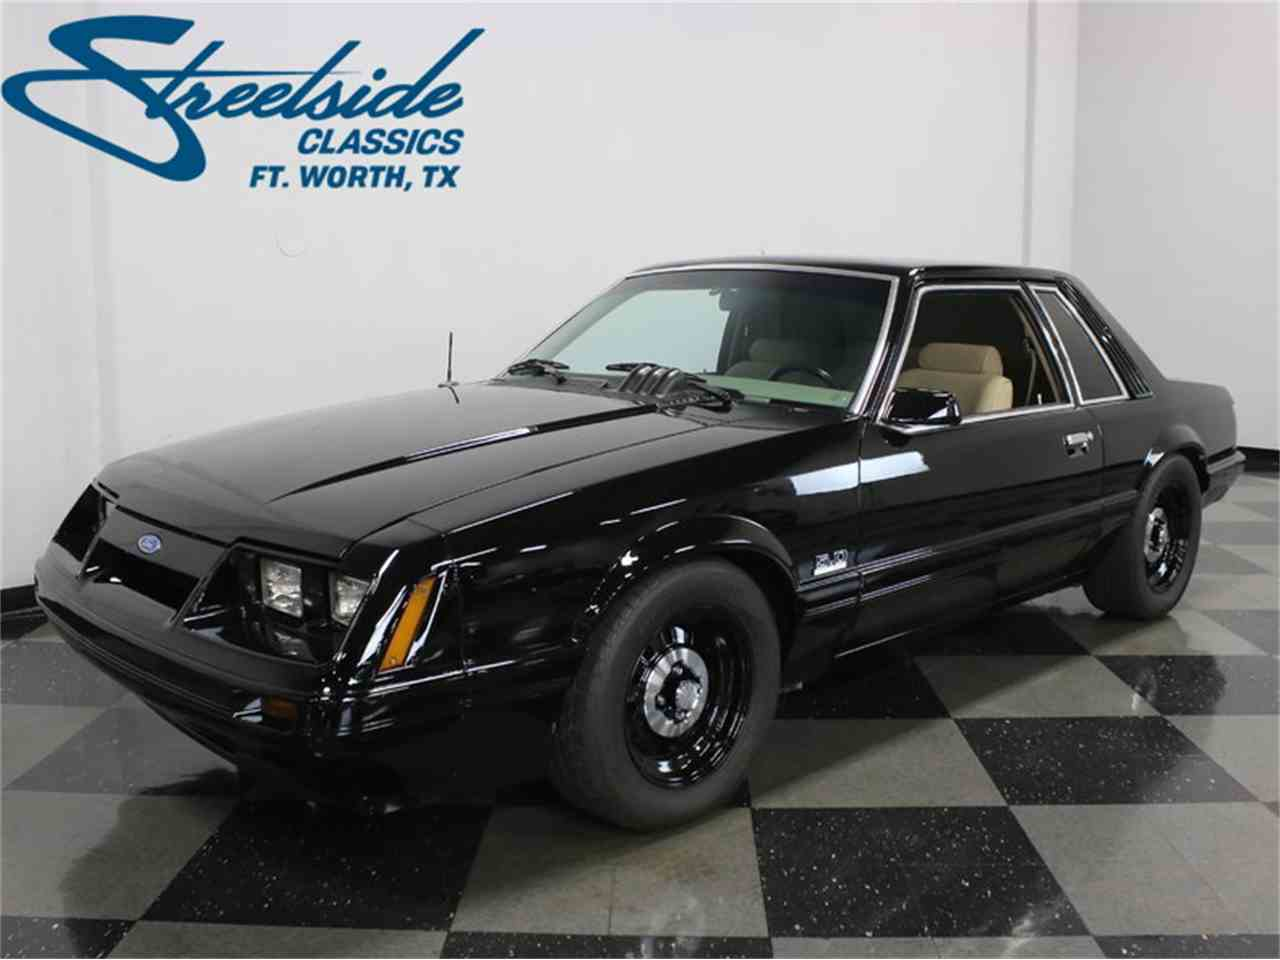 Large Picture of 1986 Mustang SSP Interceptor located in Ft Worth Texas - $24,995.00 Offered by Streetside Classics - Dallas / Fort Worth - JZNT